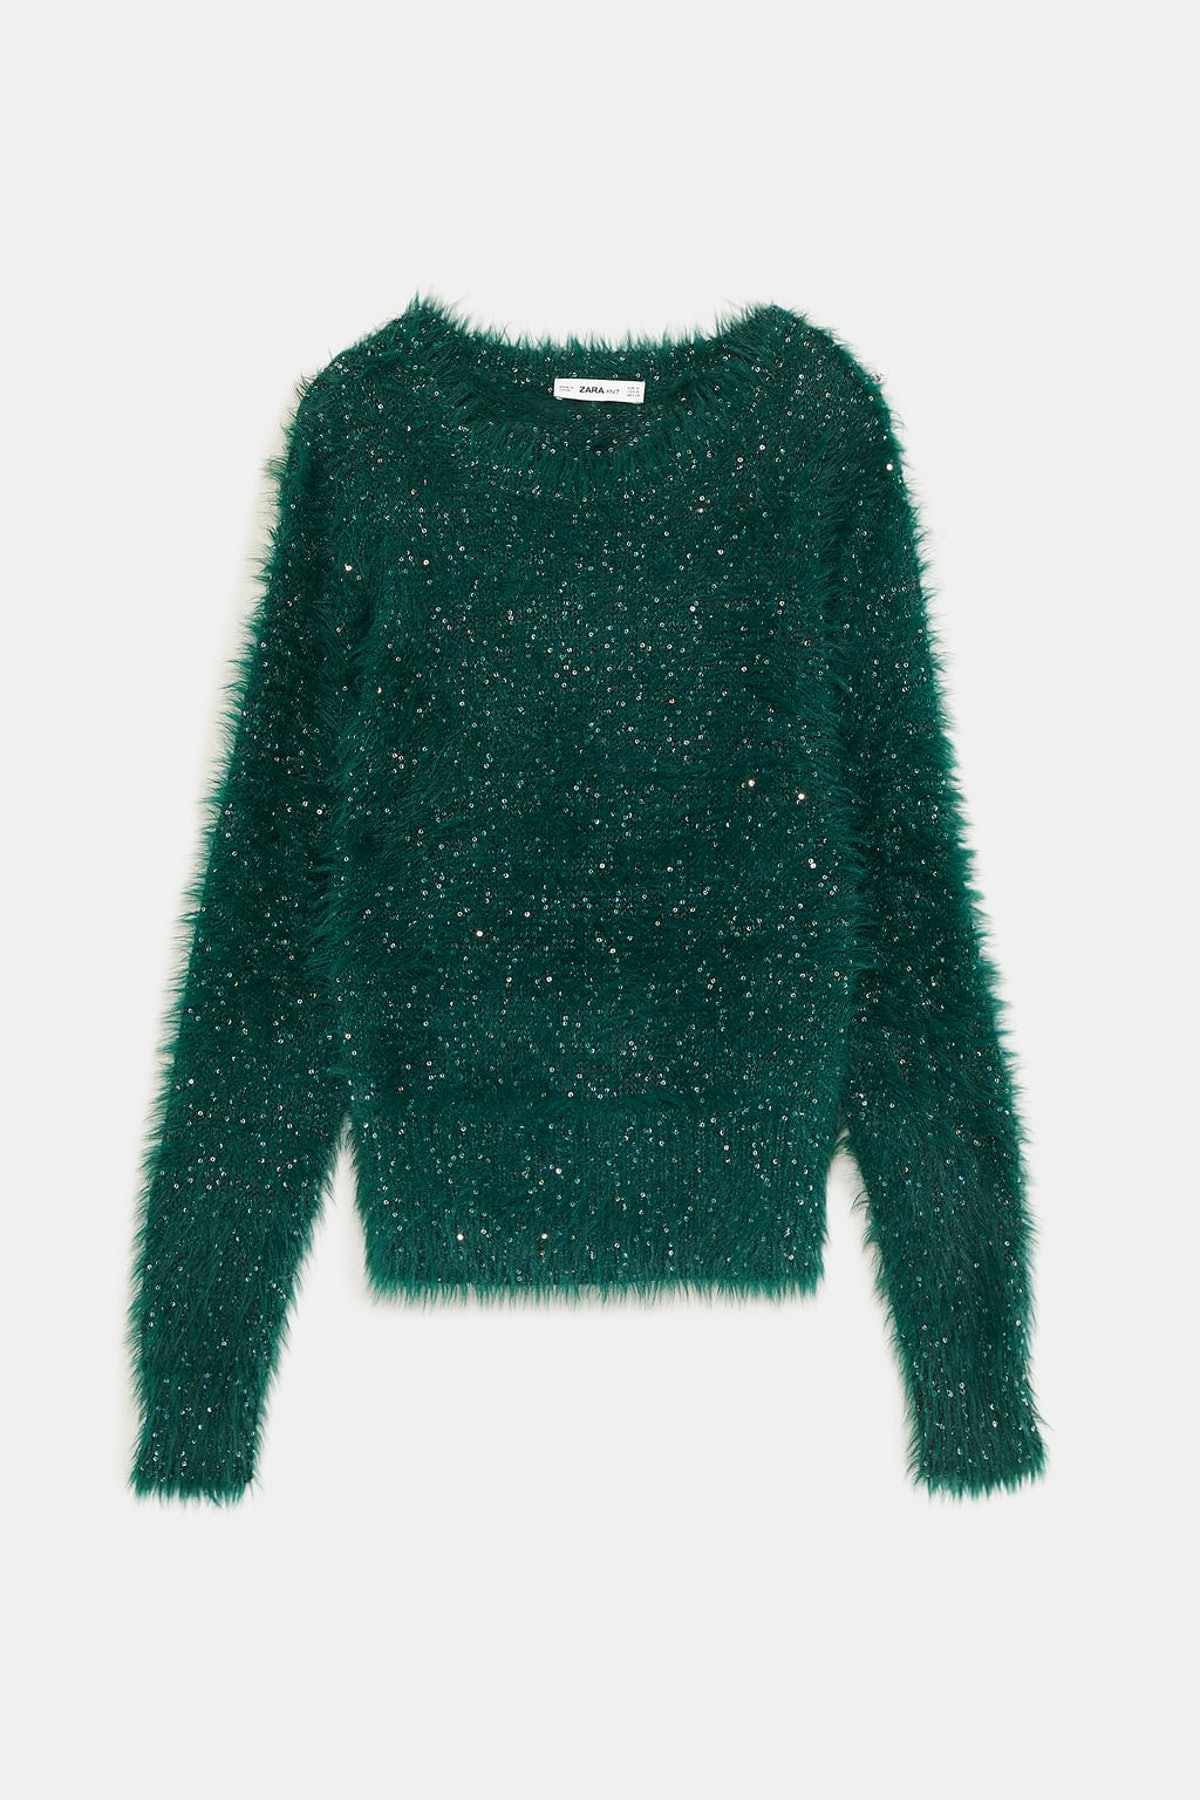 Textured Sweater With Sequins